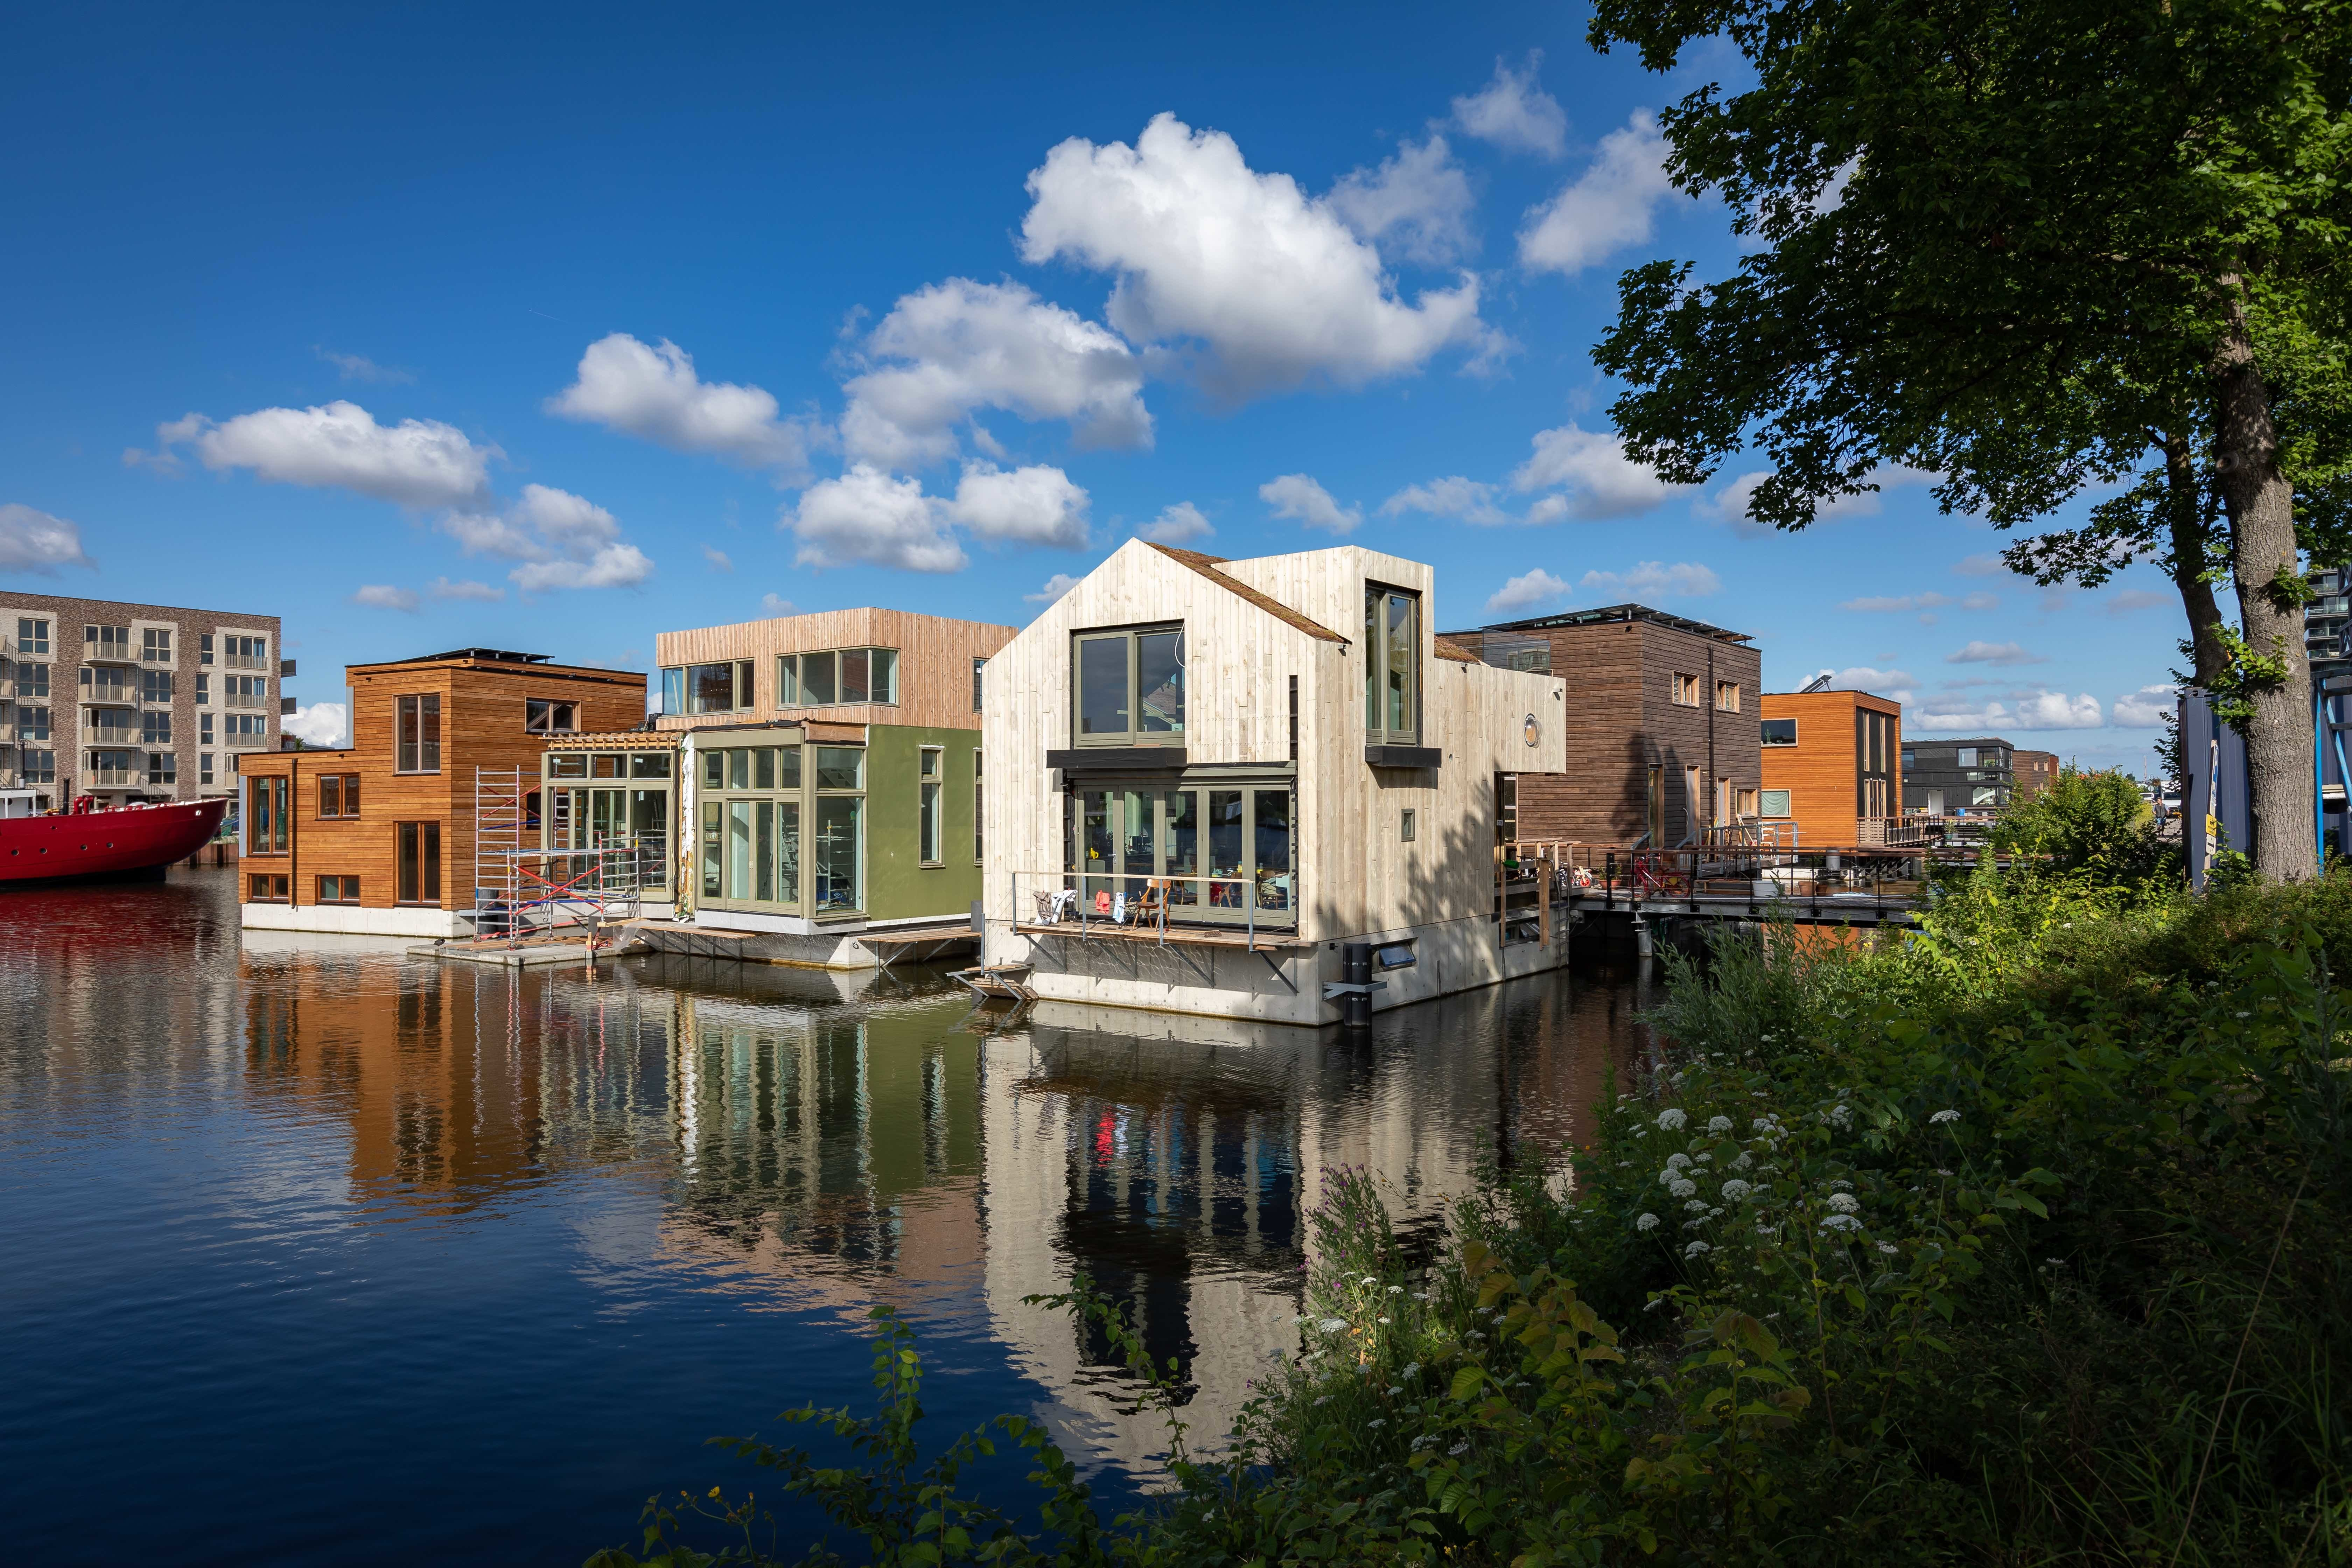 a picture of the houses in the Schoonschip block by the water